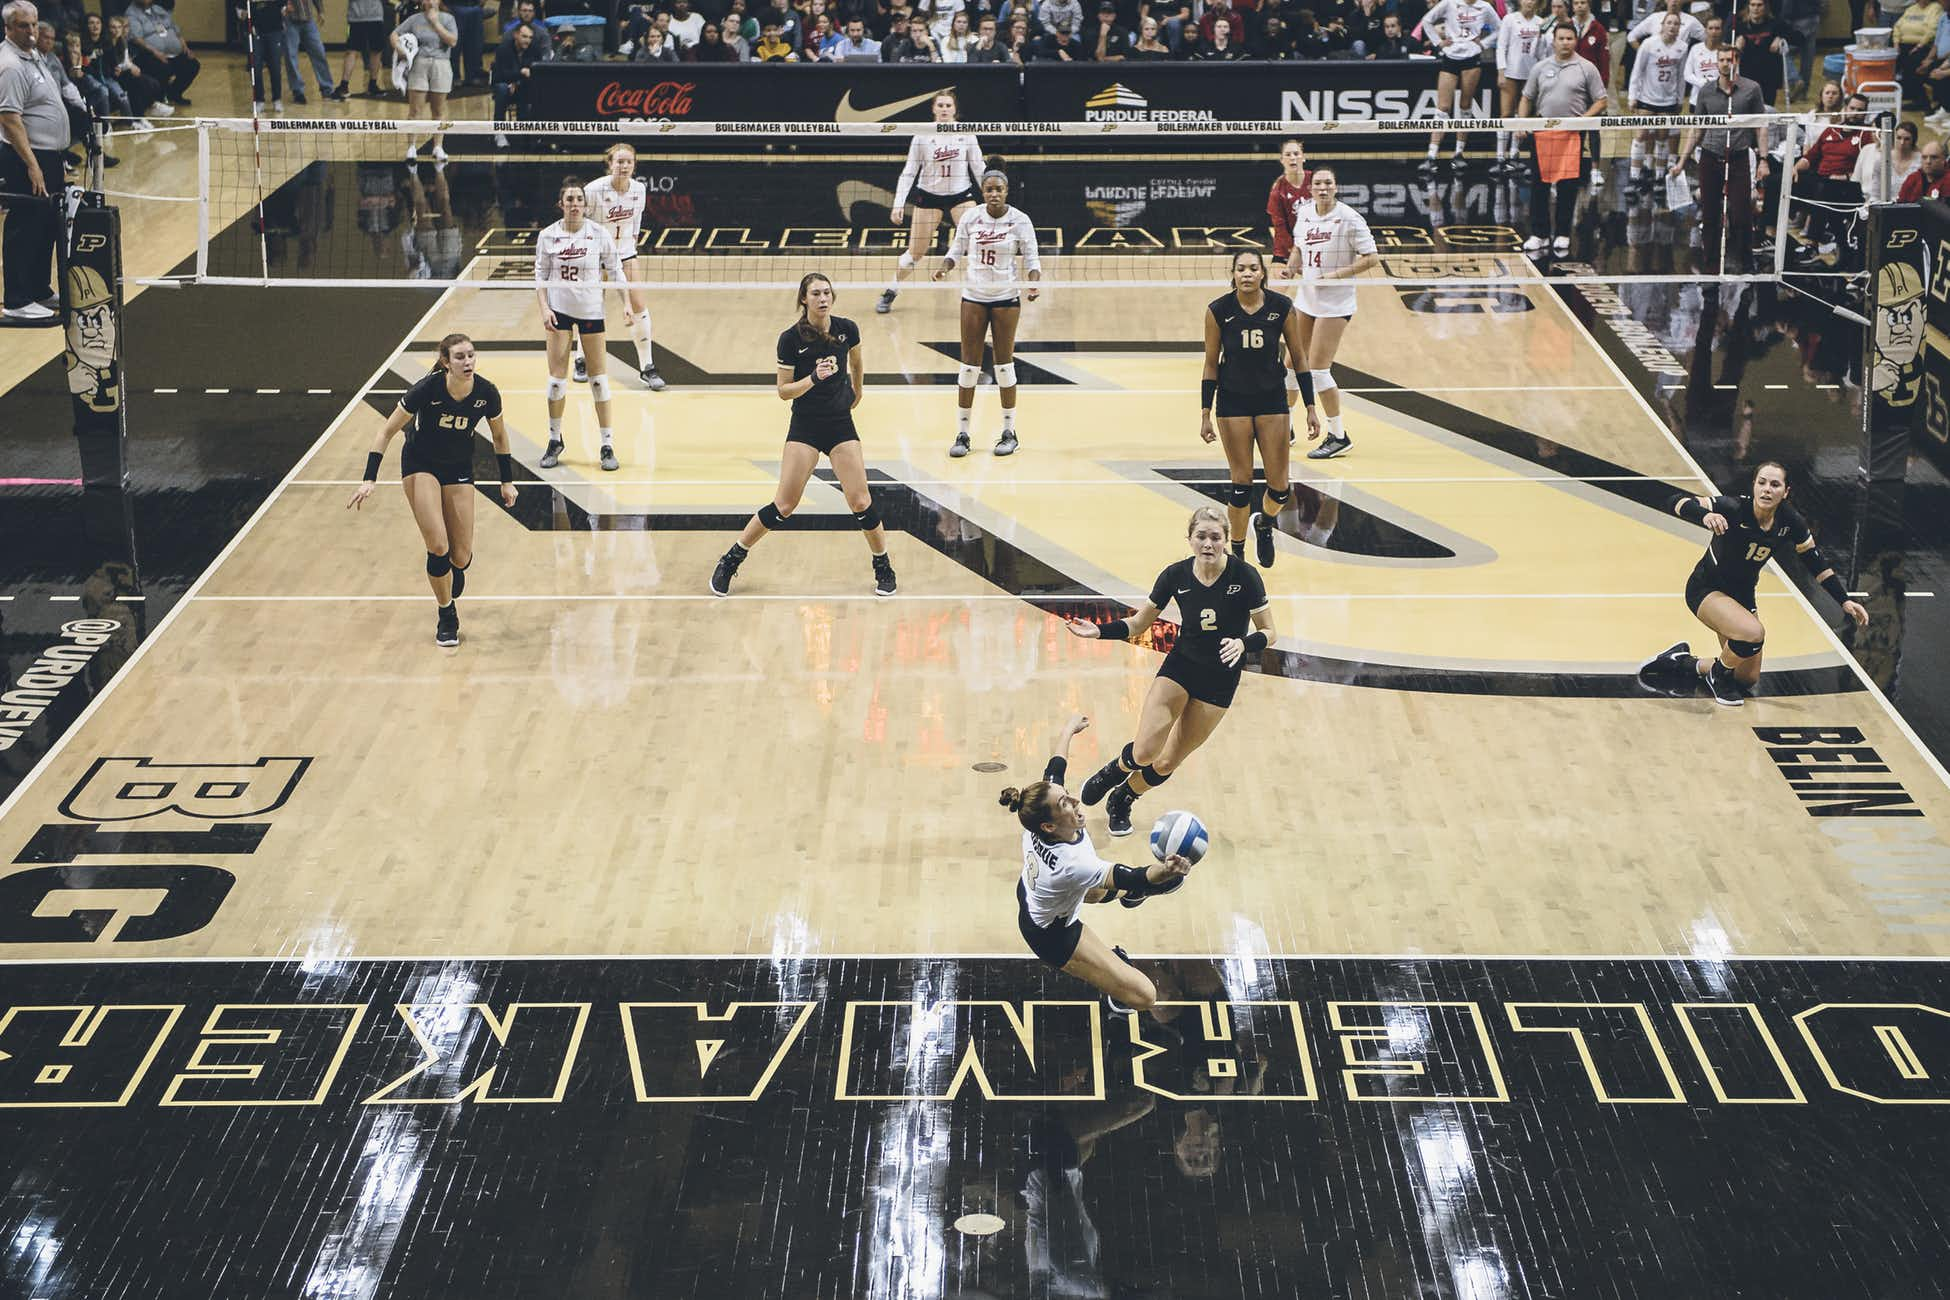 I don't remember if Purdue won this point or not; it's still a great picture. I'd look it up on the replay but btn2go sucks.